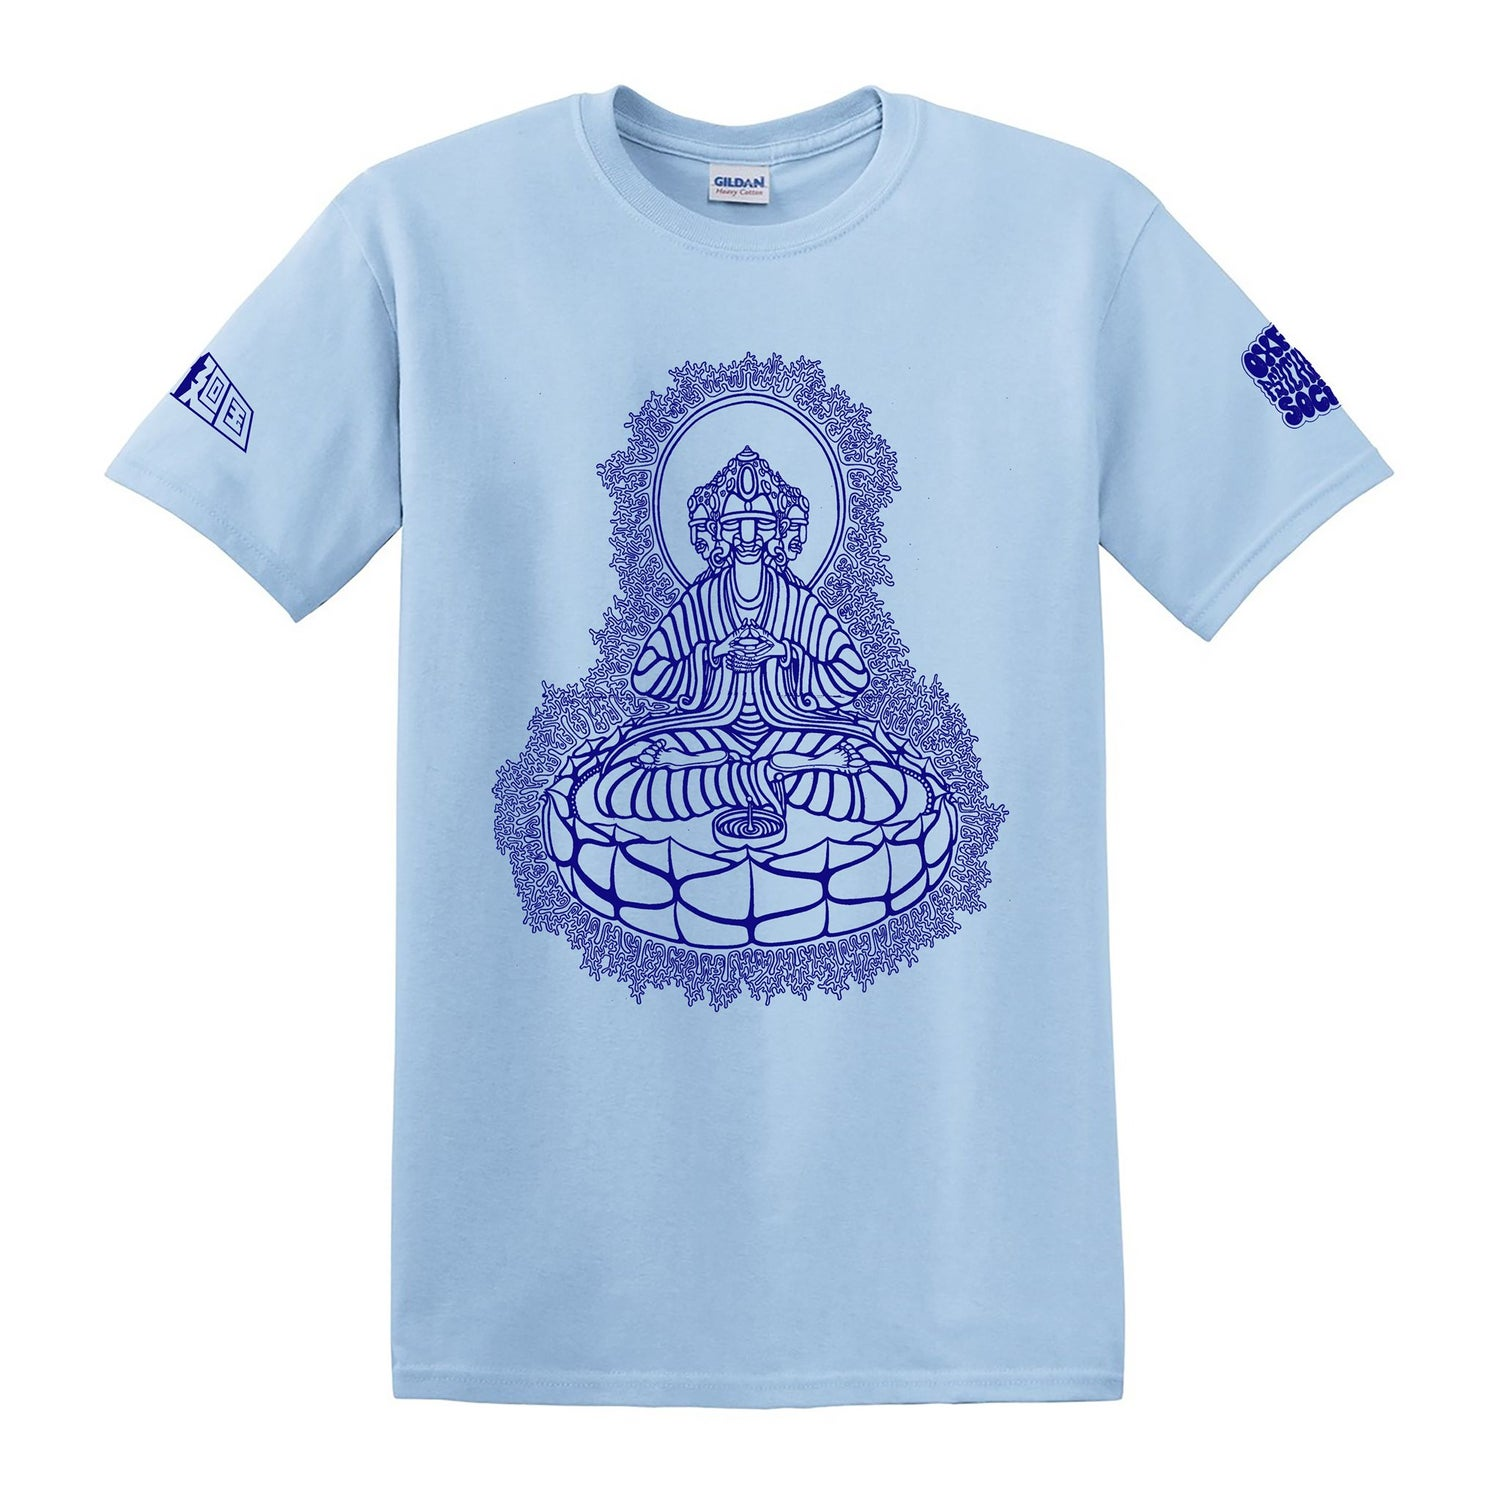 Image of Trimurti T-shirt in light blue